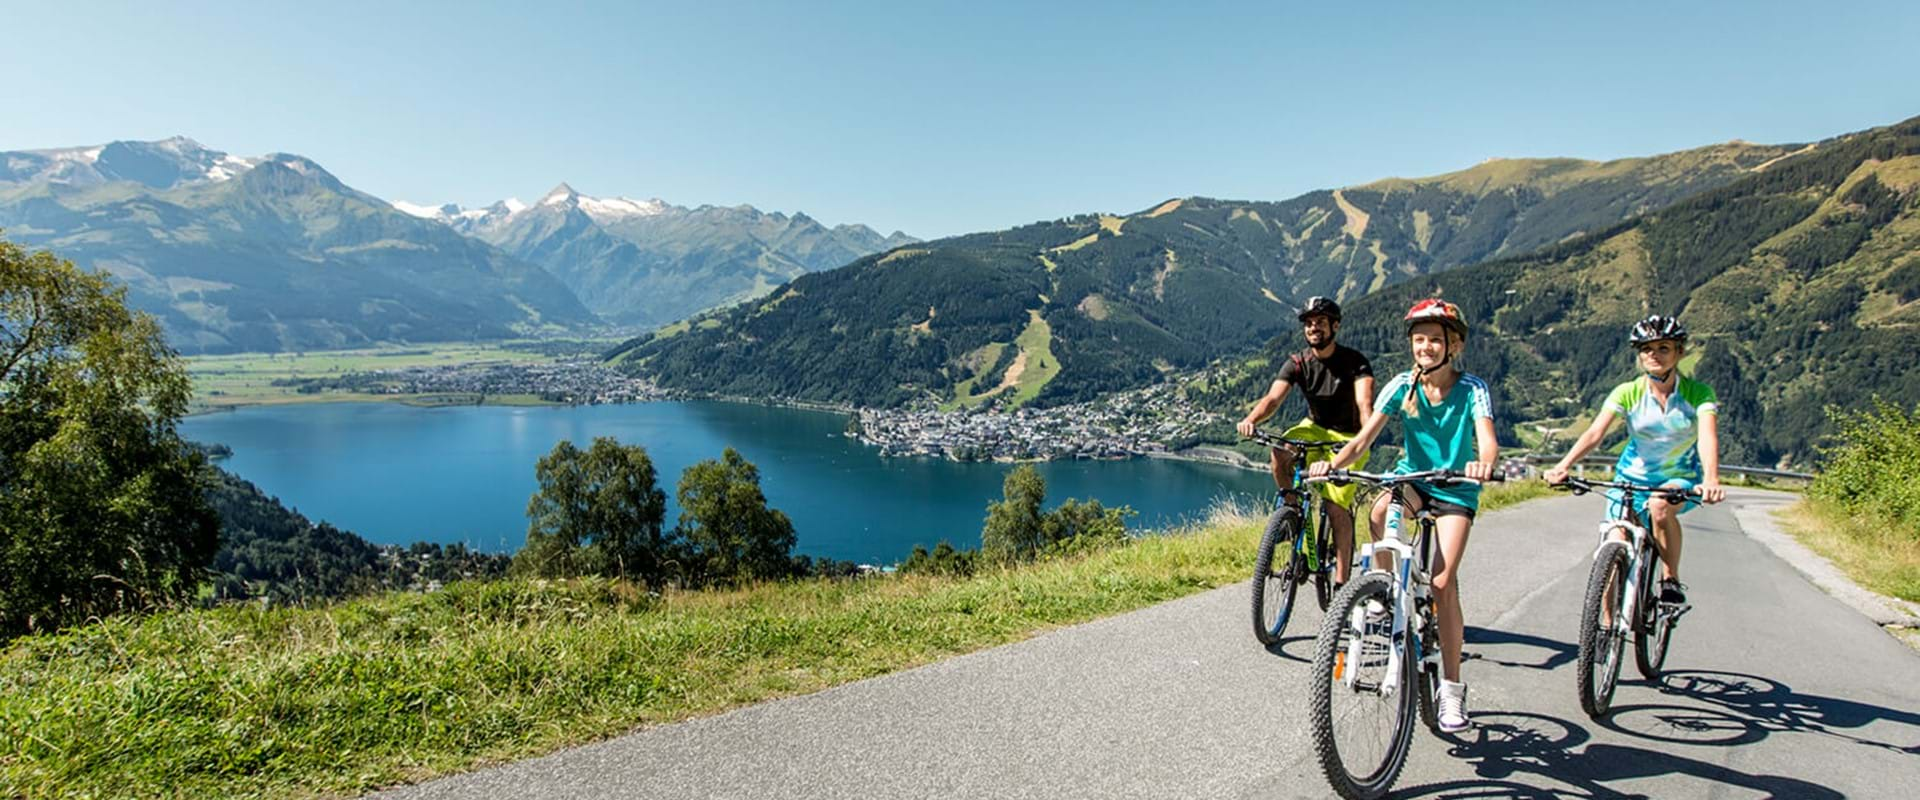 Biking with a view to Zell am See